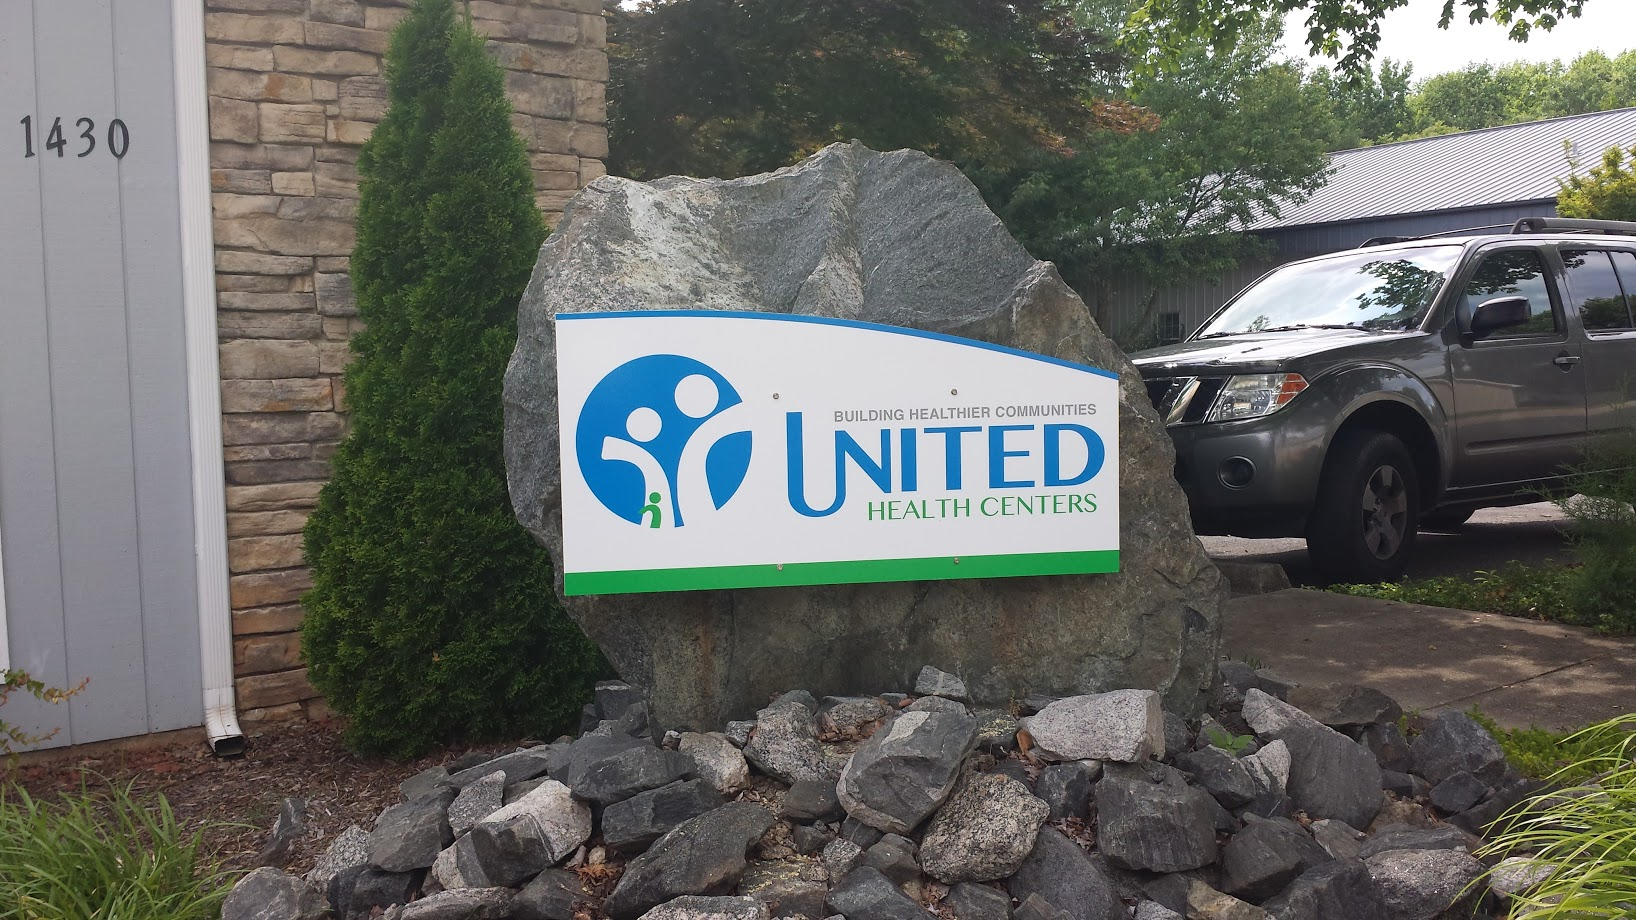 united health centers front rock signage display